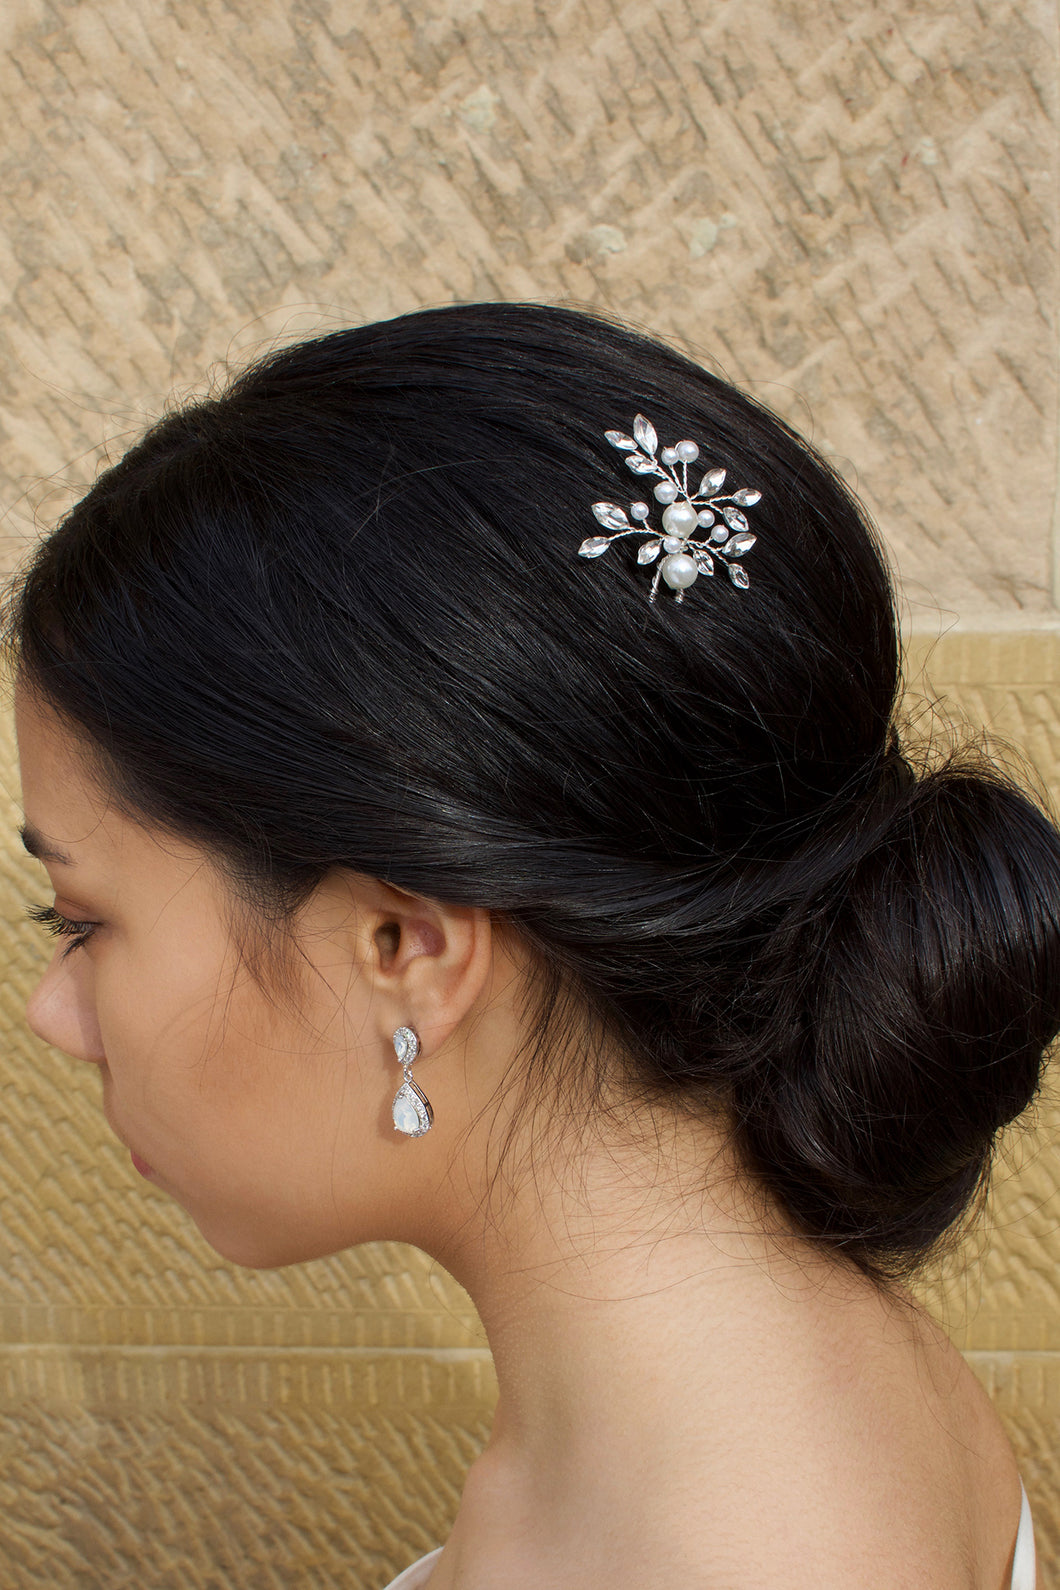 A black haired model wears a pearl and crystal hairpin with a sandstone background